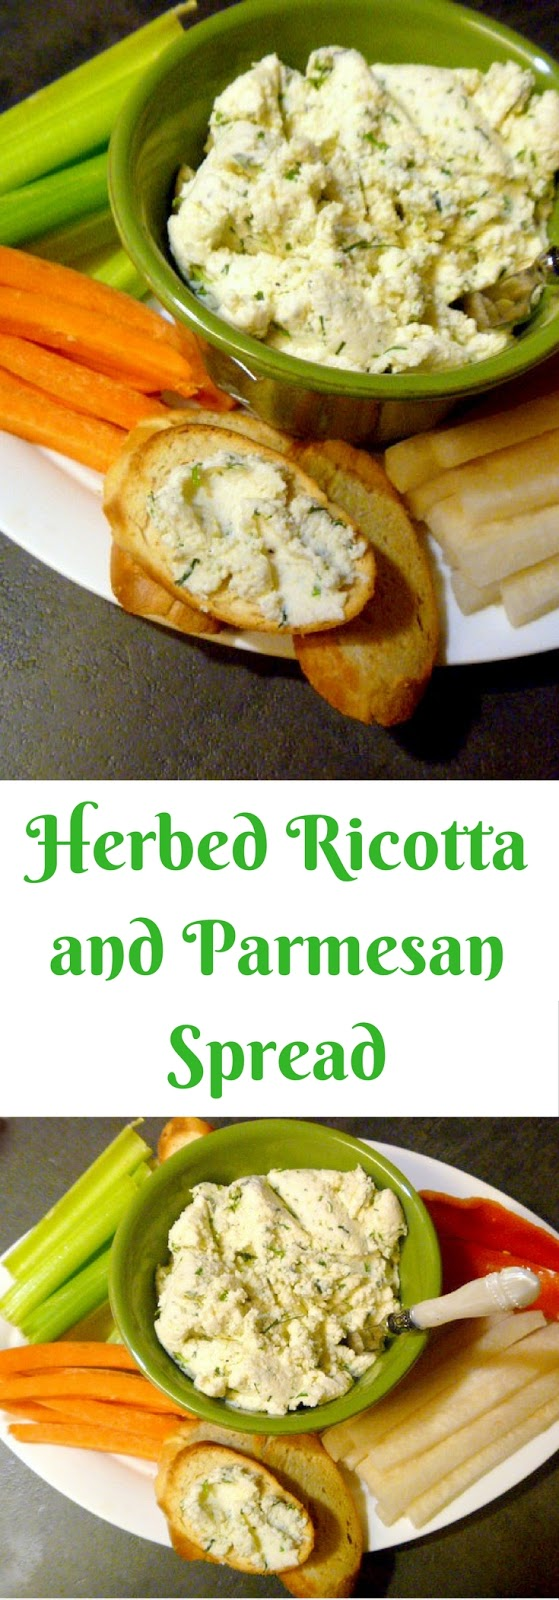 Herbed Ricotta and Parmesan Spread - perfect as an appetizer for game ...